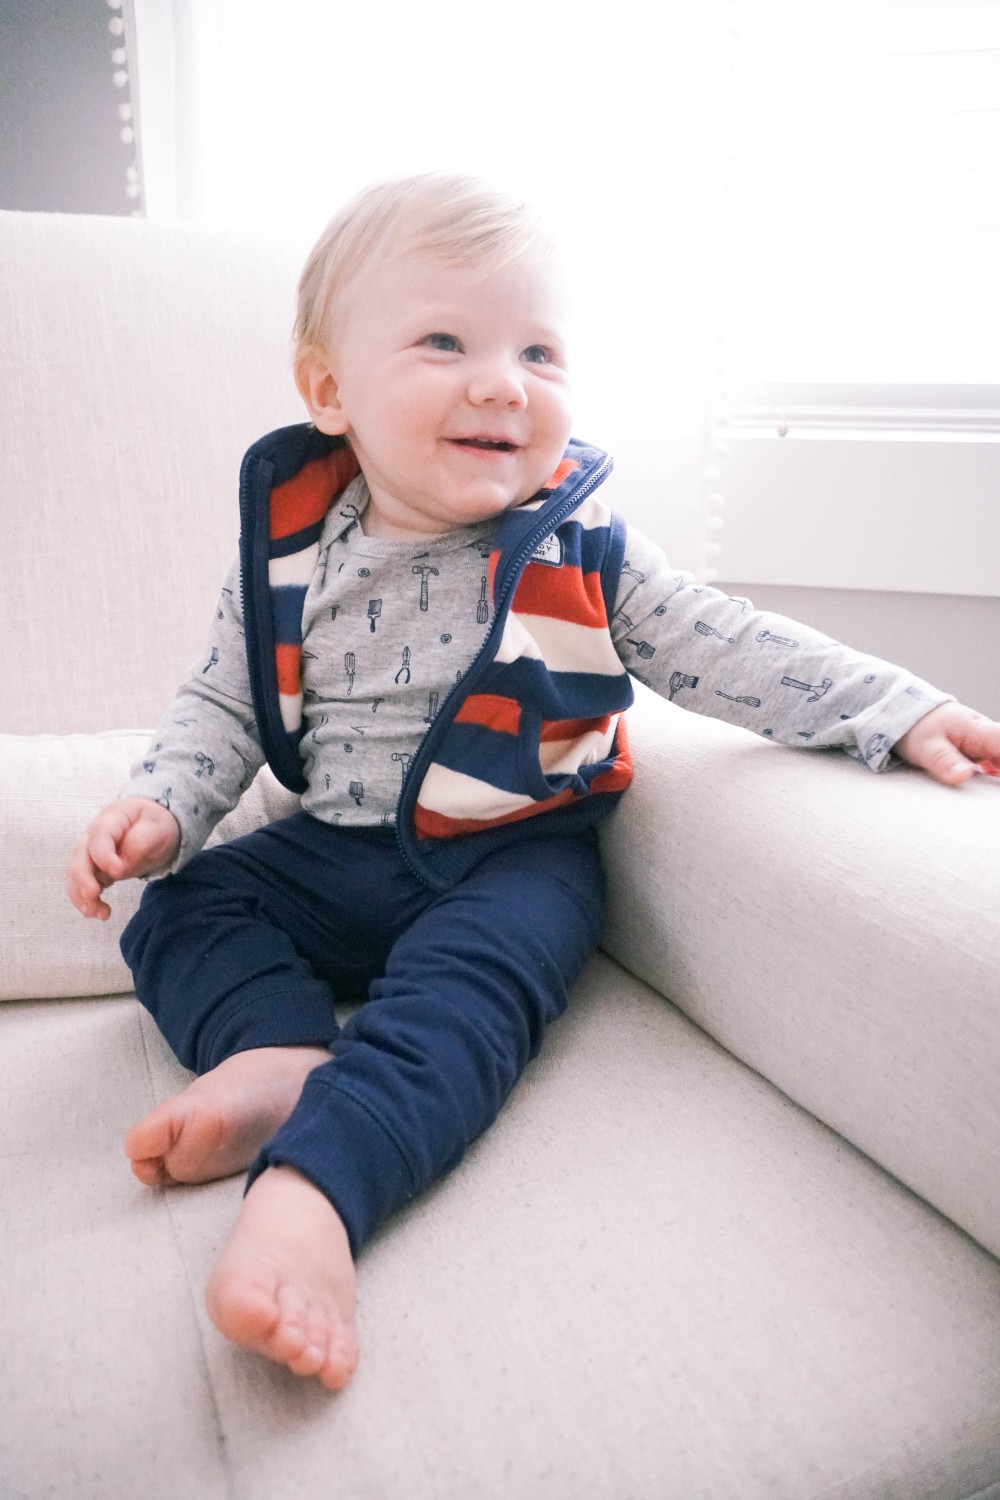 Carter's Baby-JCPenney-Baby Boy Clothes Under $30-Fall Fashion for Baby-Baby Clothing Sale-Have Need Want 4